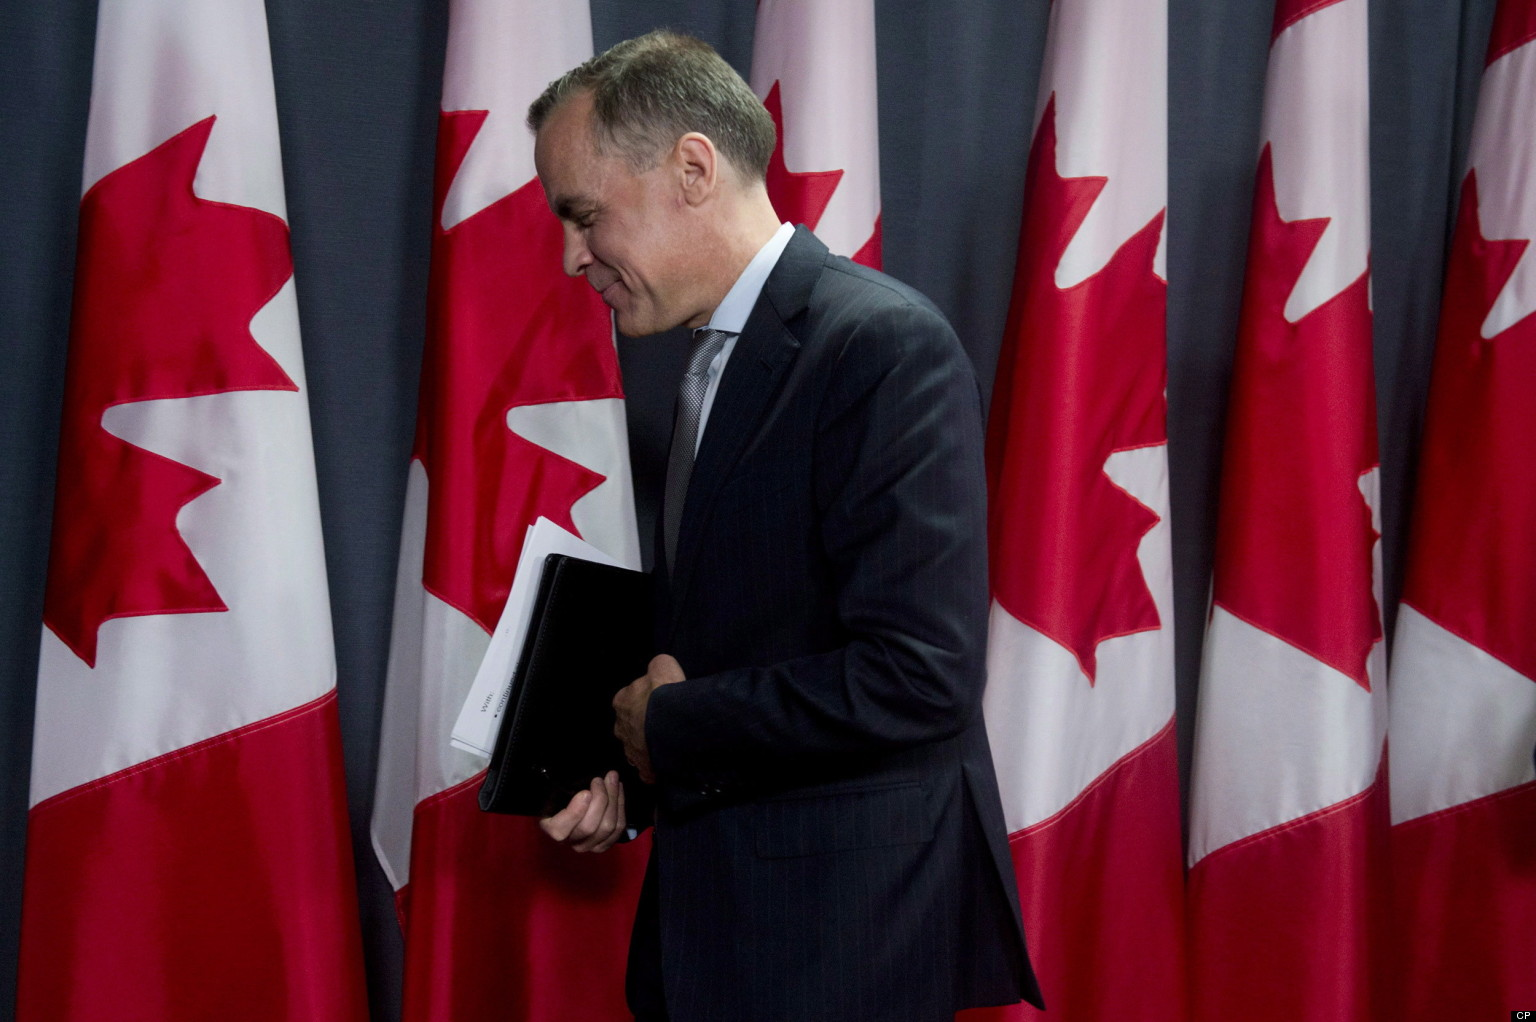 HOUSEHOLD-DEBT-CANADA-MARK-CARNEY-facebook.jpg